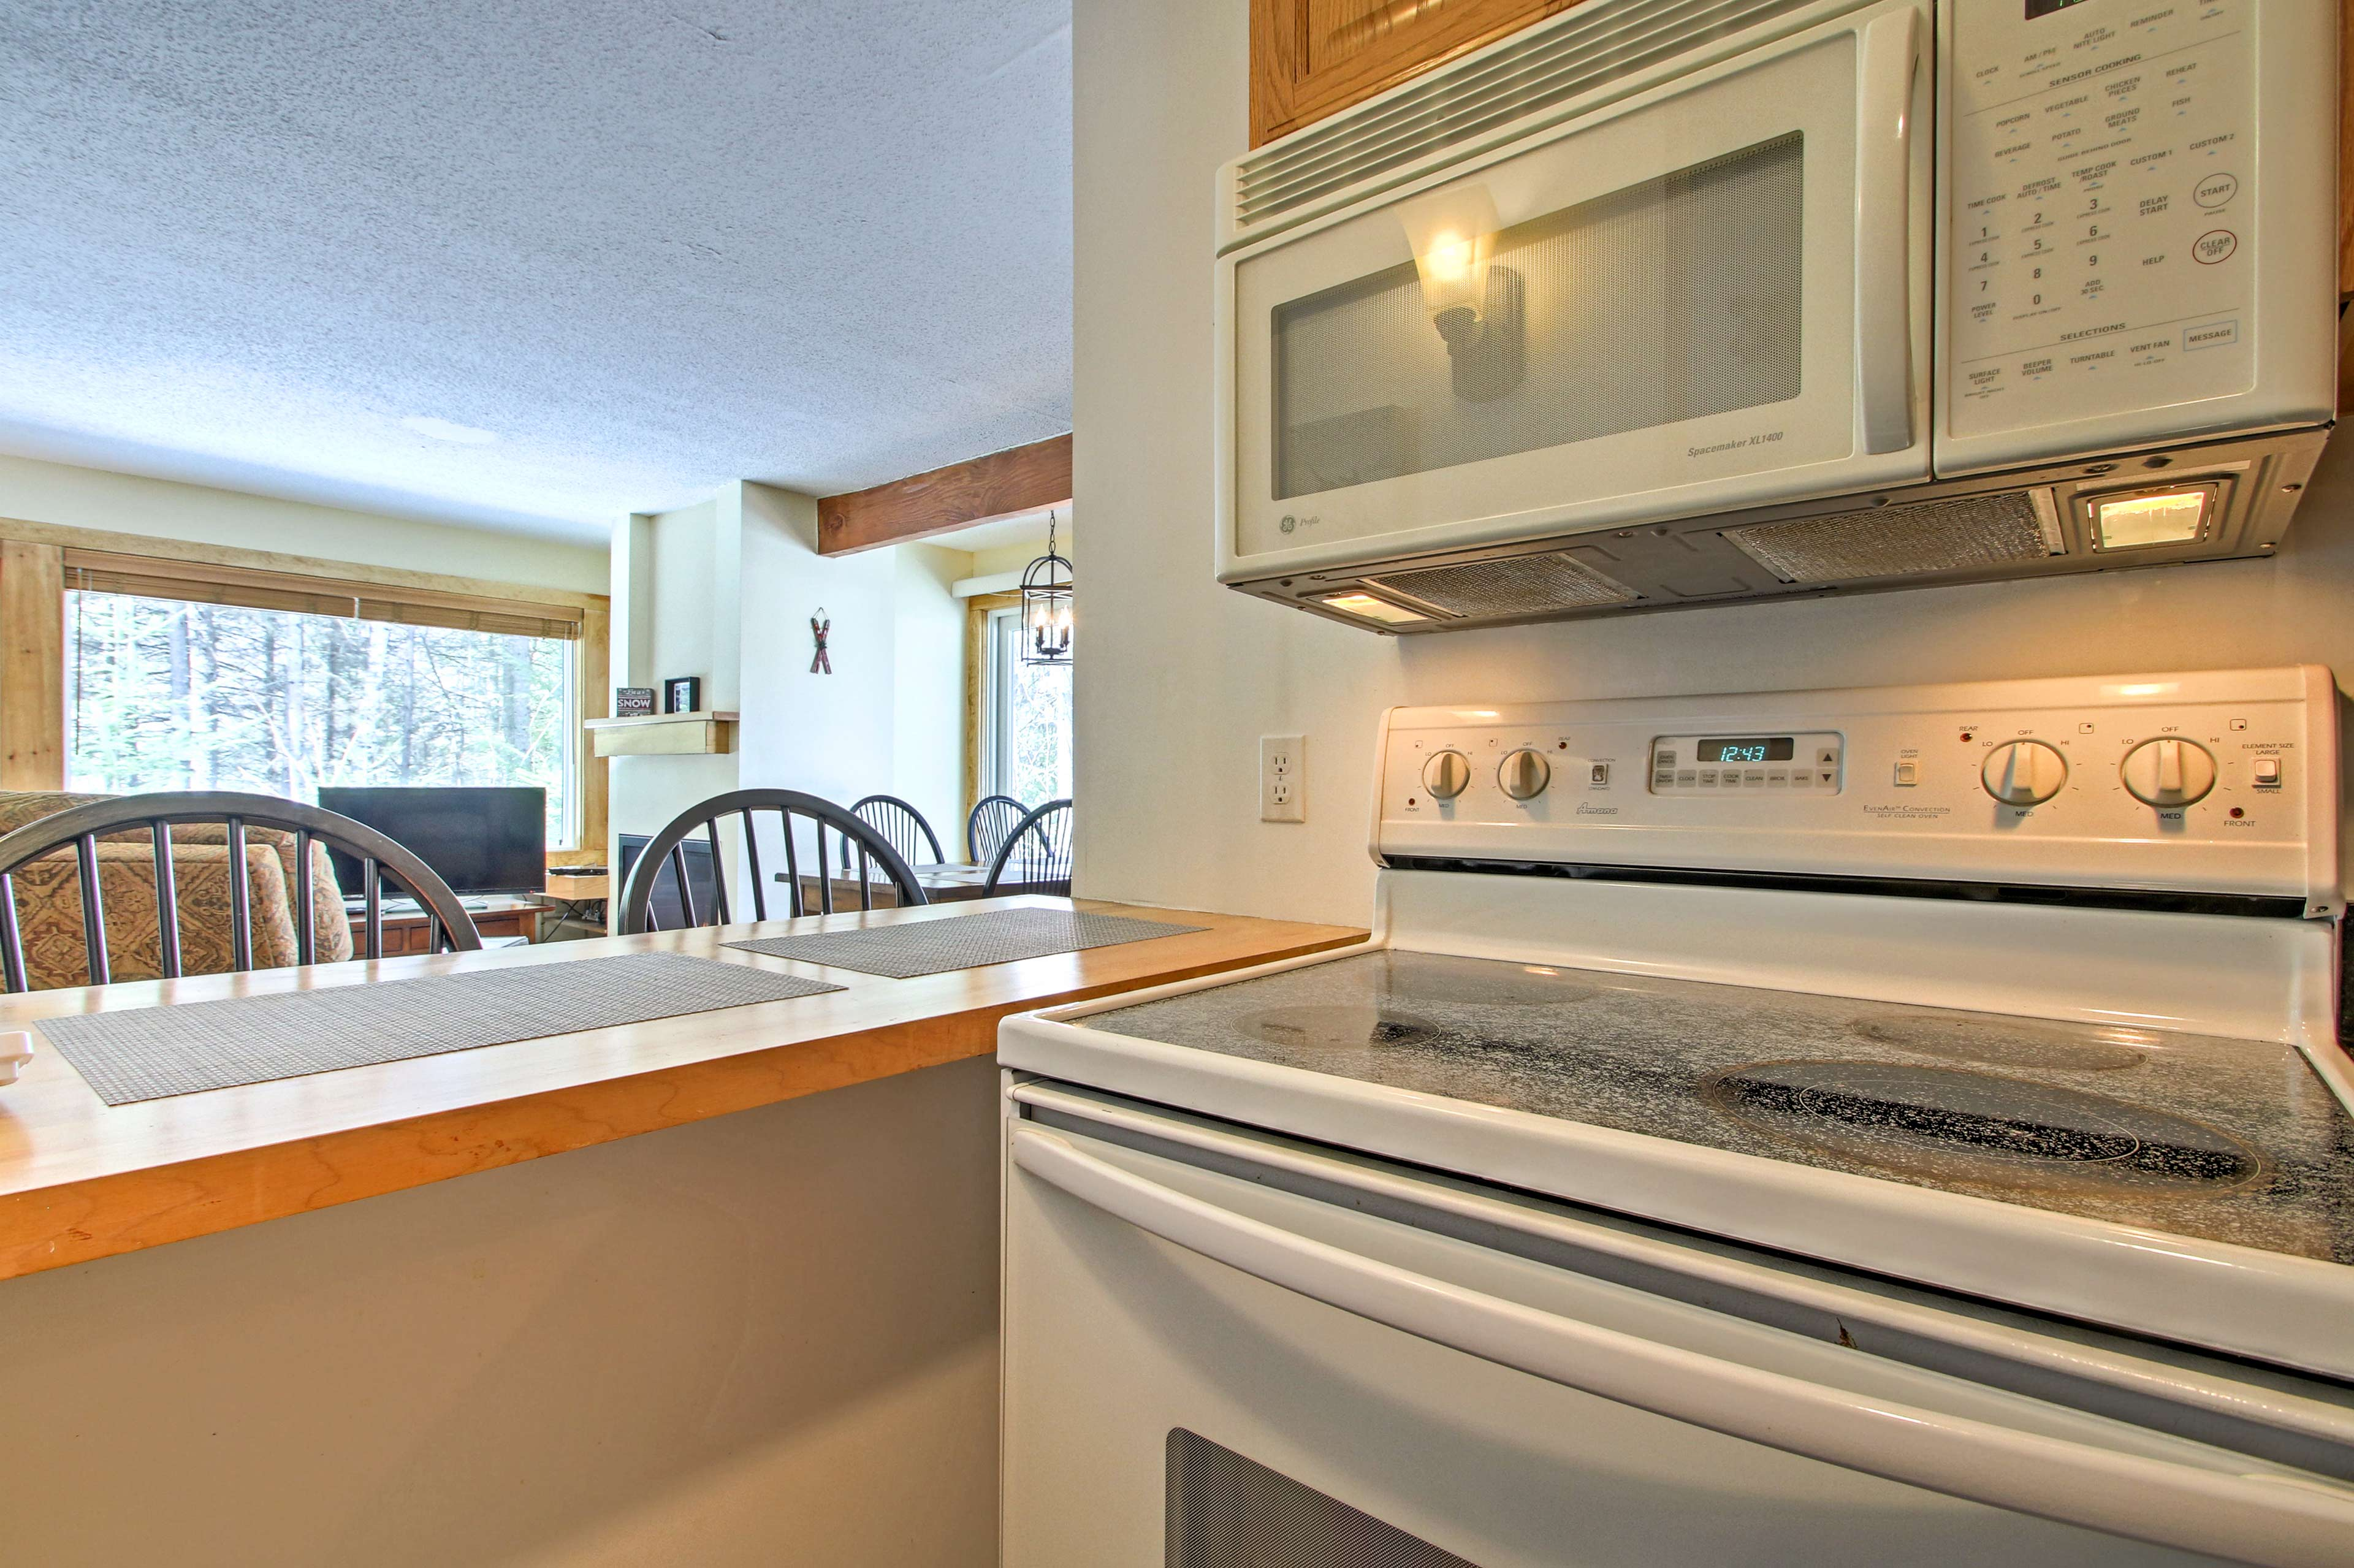 The kitchen sits just steps from the main living area.